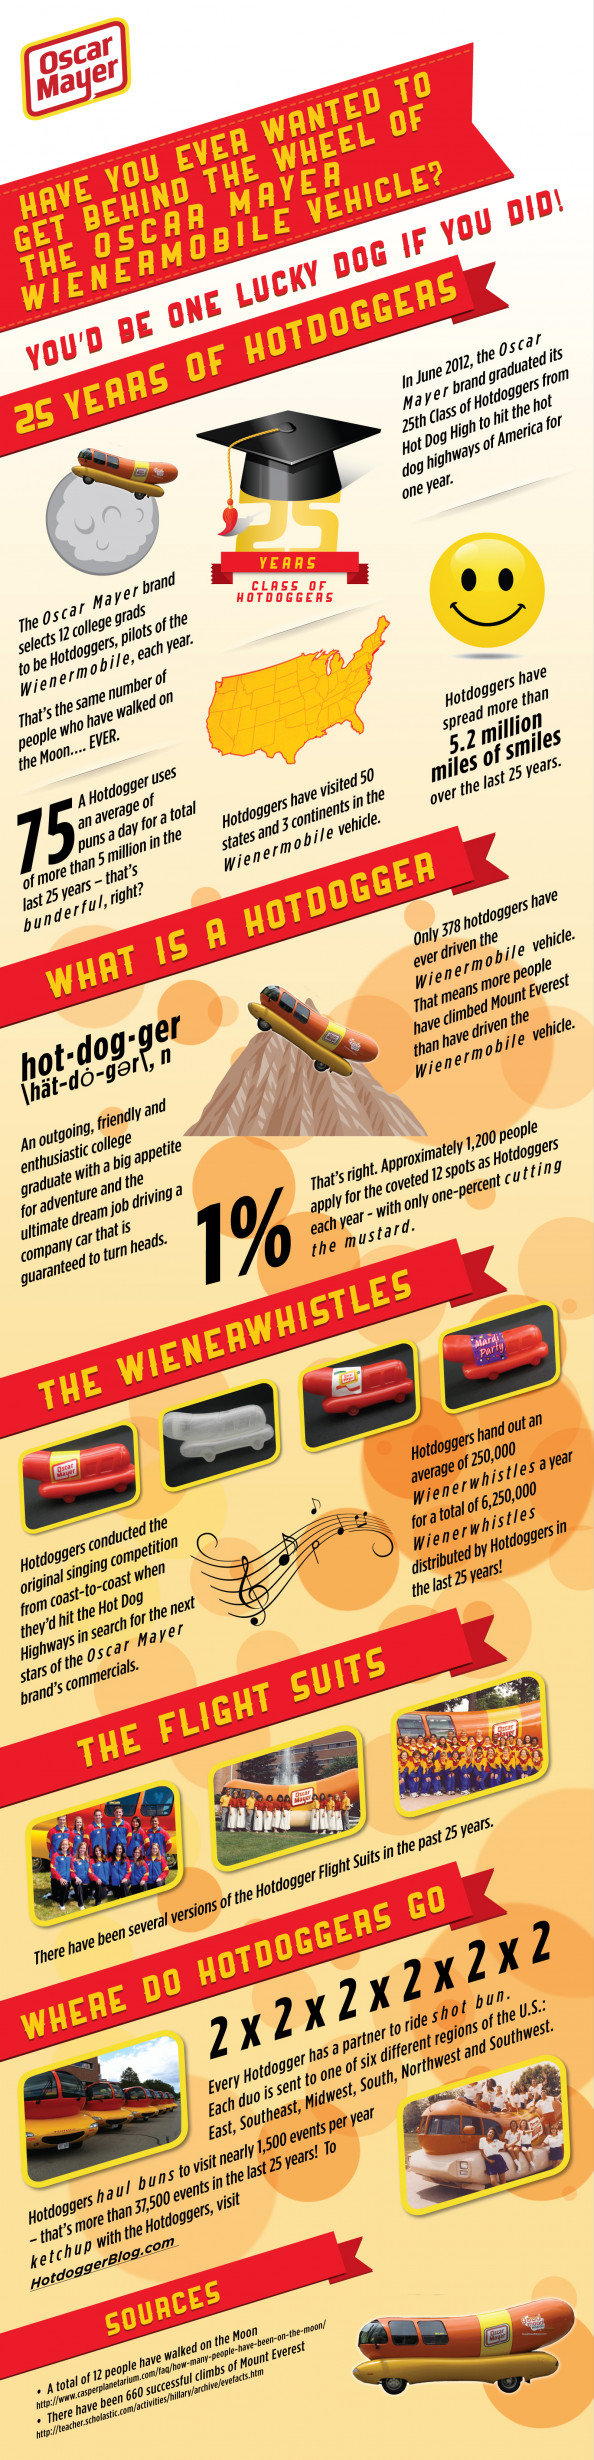 Oscar Mayer: 25 Years of Hotdoggers Infographic